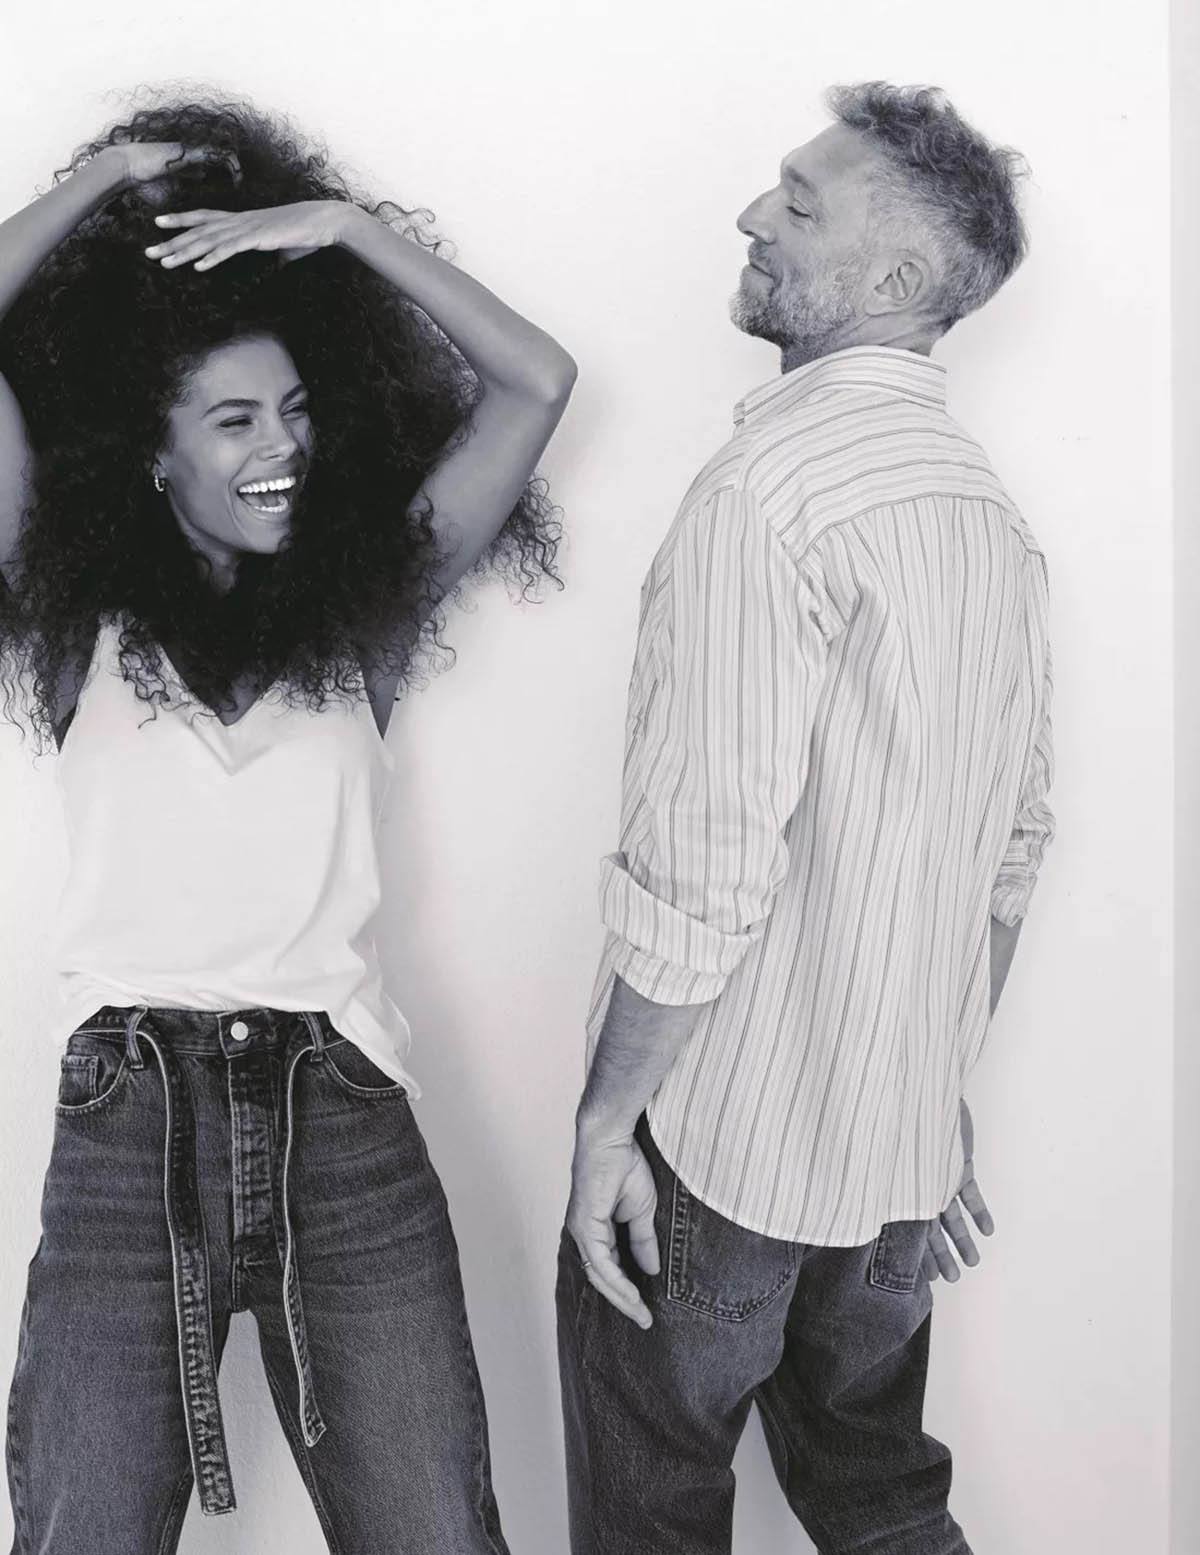 Vincent Cassel and Tina Kunakey cover Madame Figaro February 5th, 2021 by Dant Studio